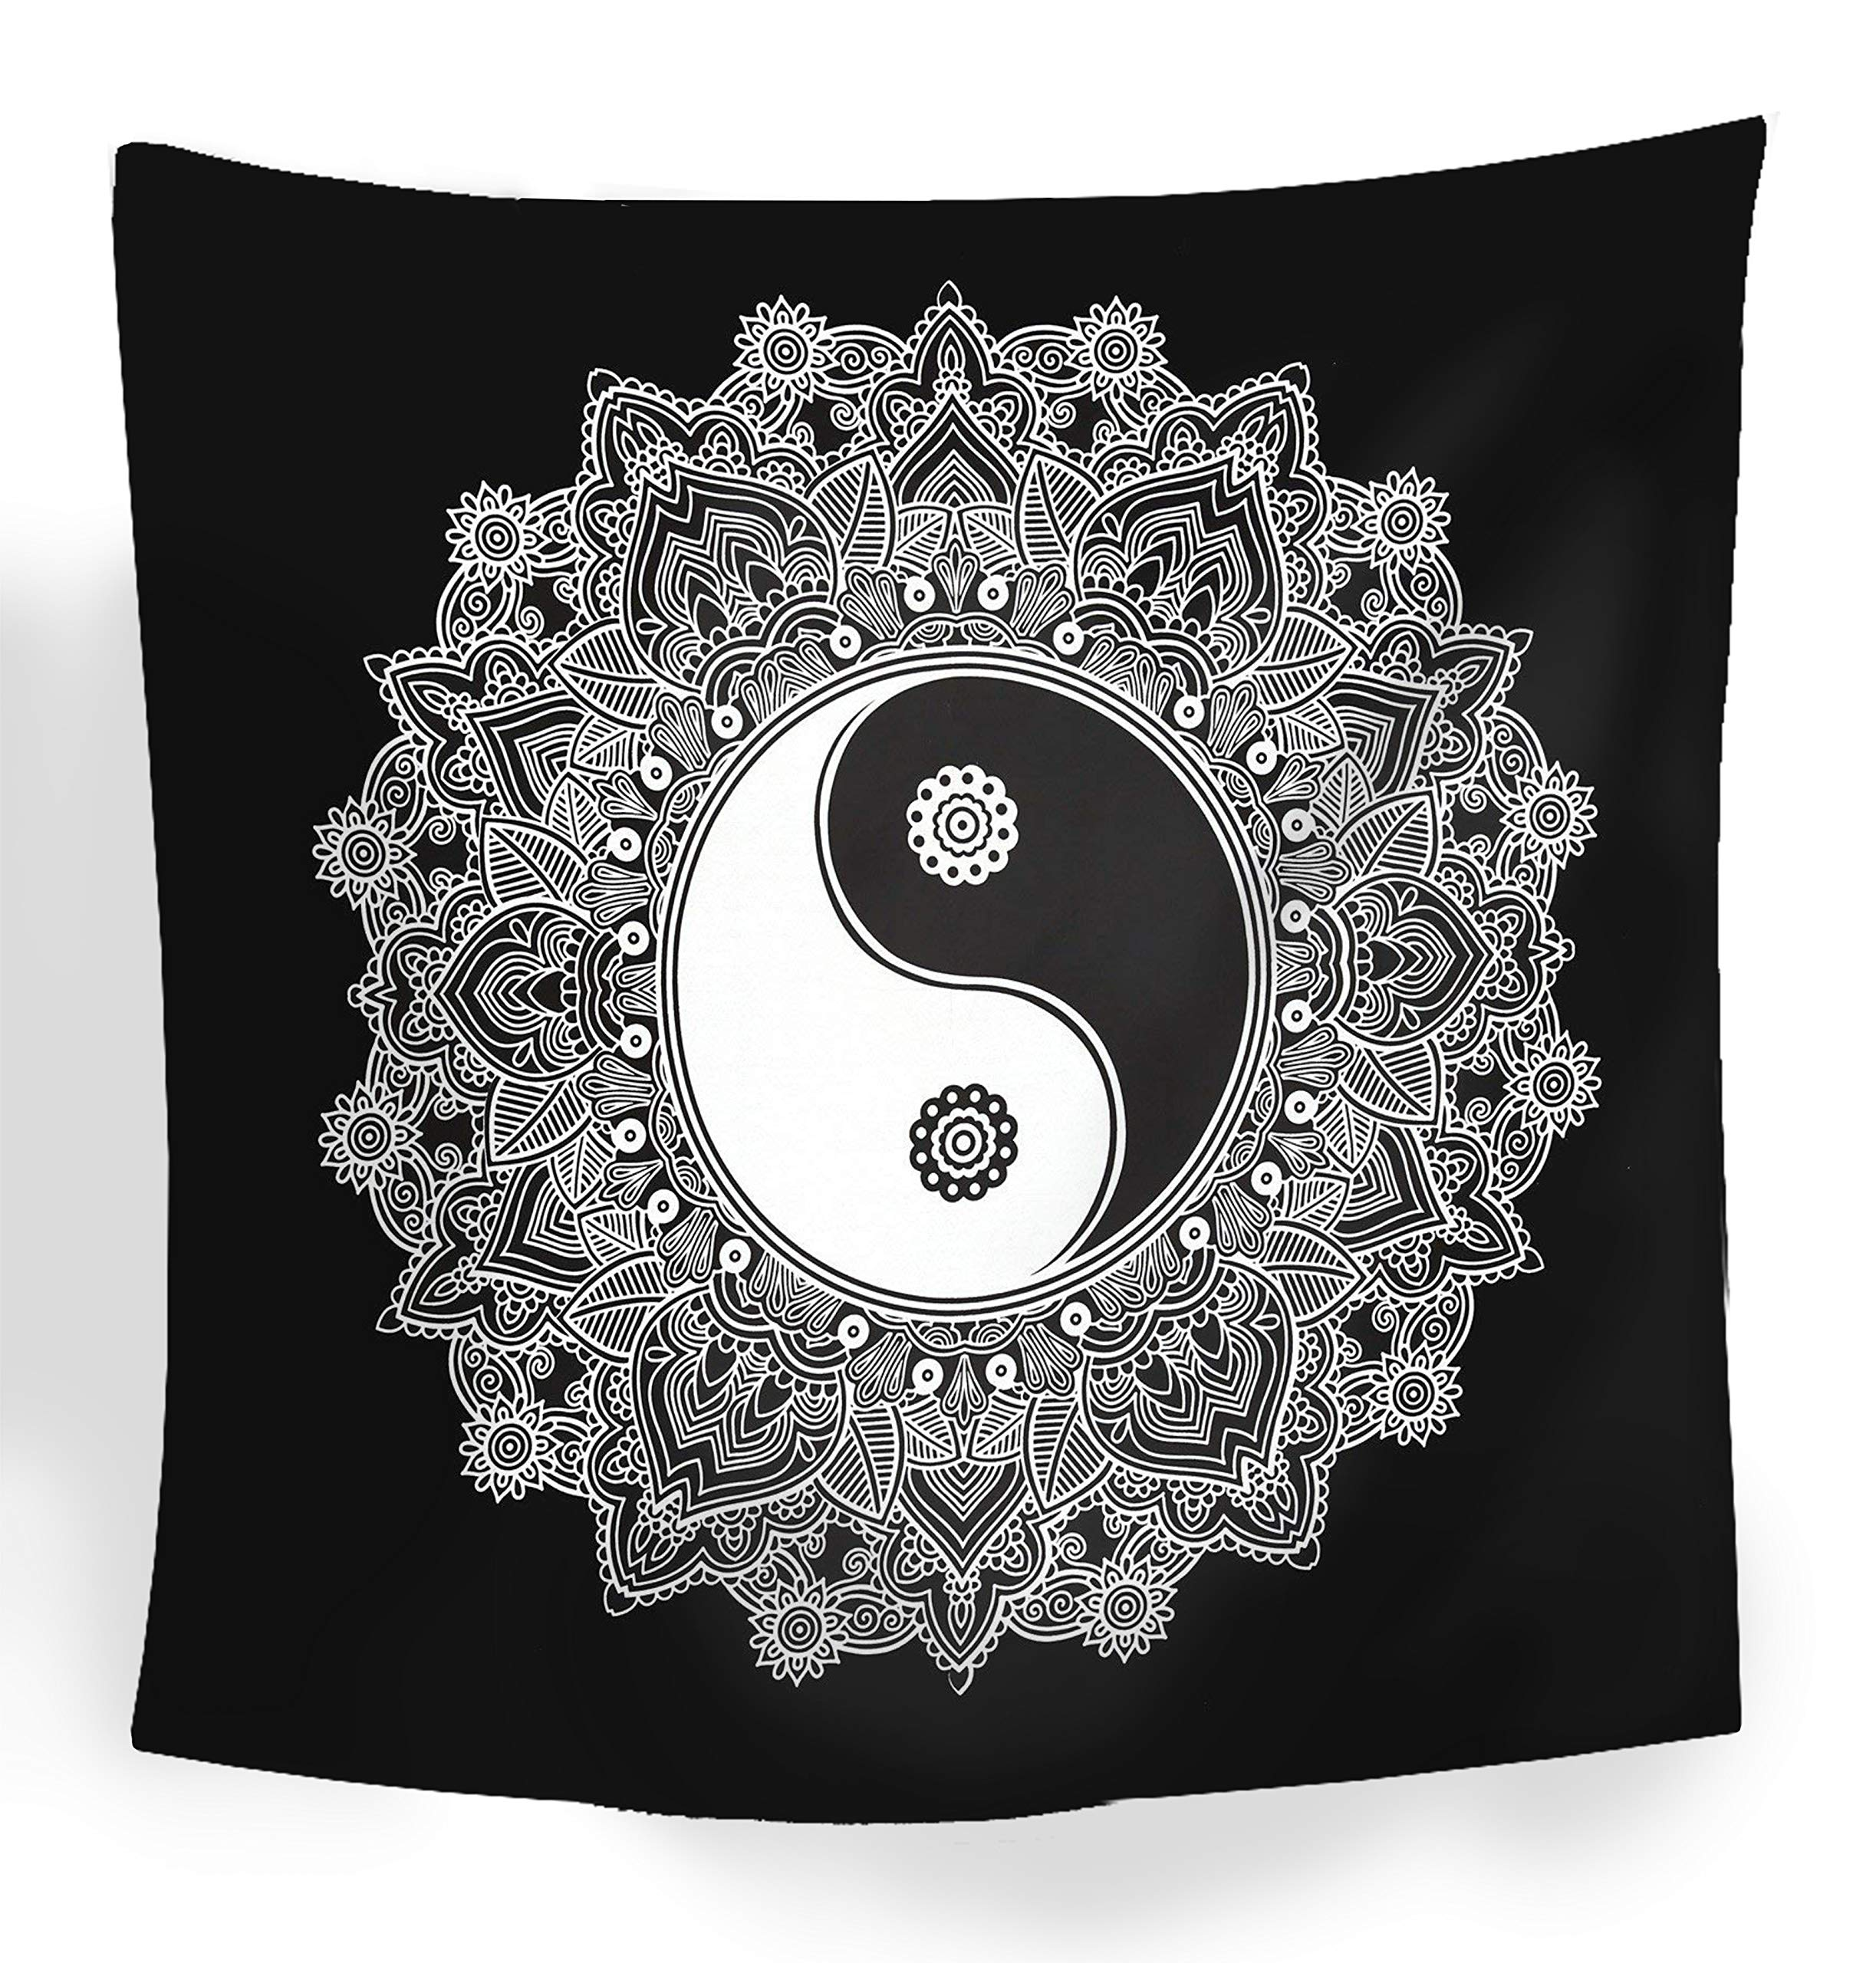 Black And White Tapestry, YinYang Wall Hanging Tapestry, Mandala Tapestries, Indian Traditional Cotton Printed Bohemian Hippie Large Wall Art by SheetKart by SheetKart